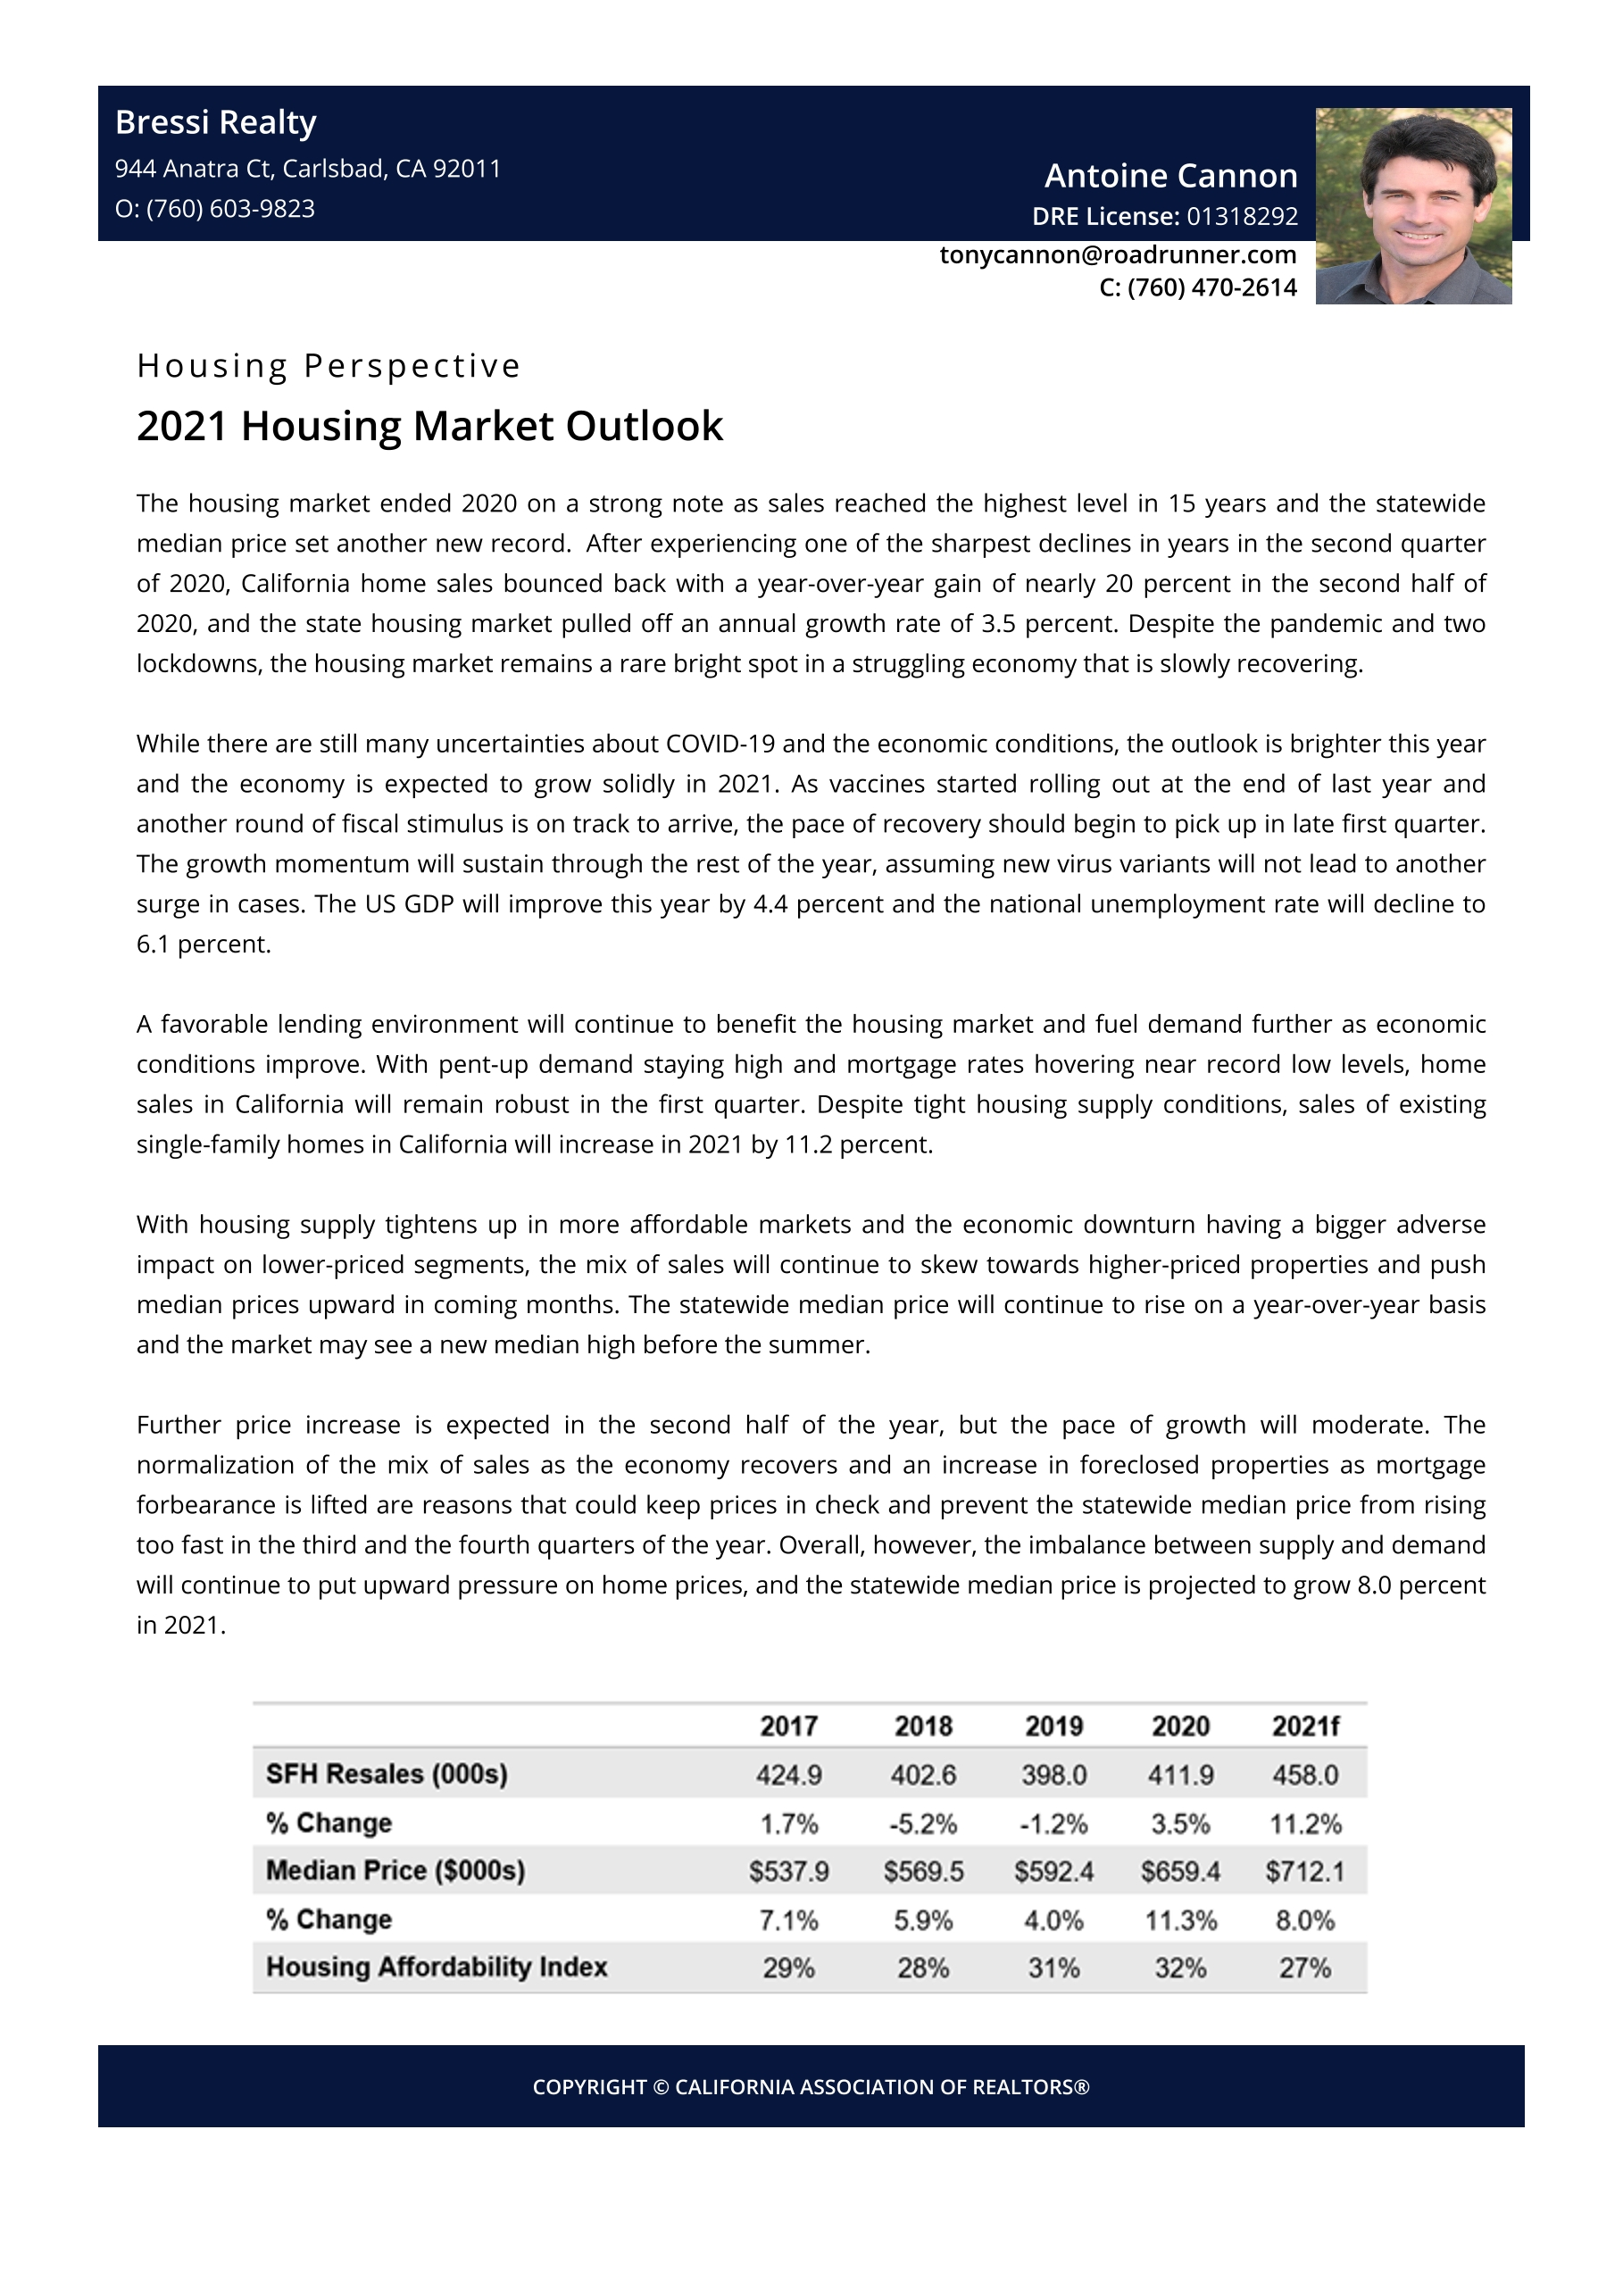 Housing Market Results and Forecast for California